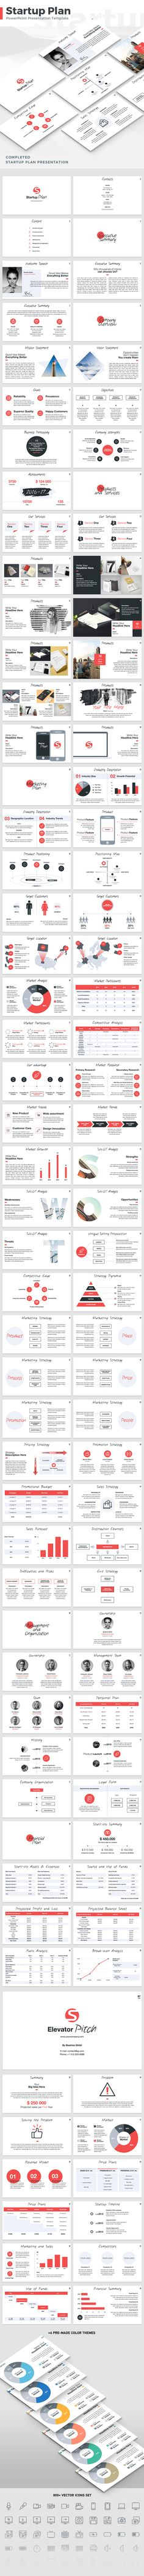 Business plan powerpoint template pinterest business planning startup plan powerpoint template wajeb Image collections